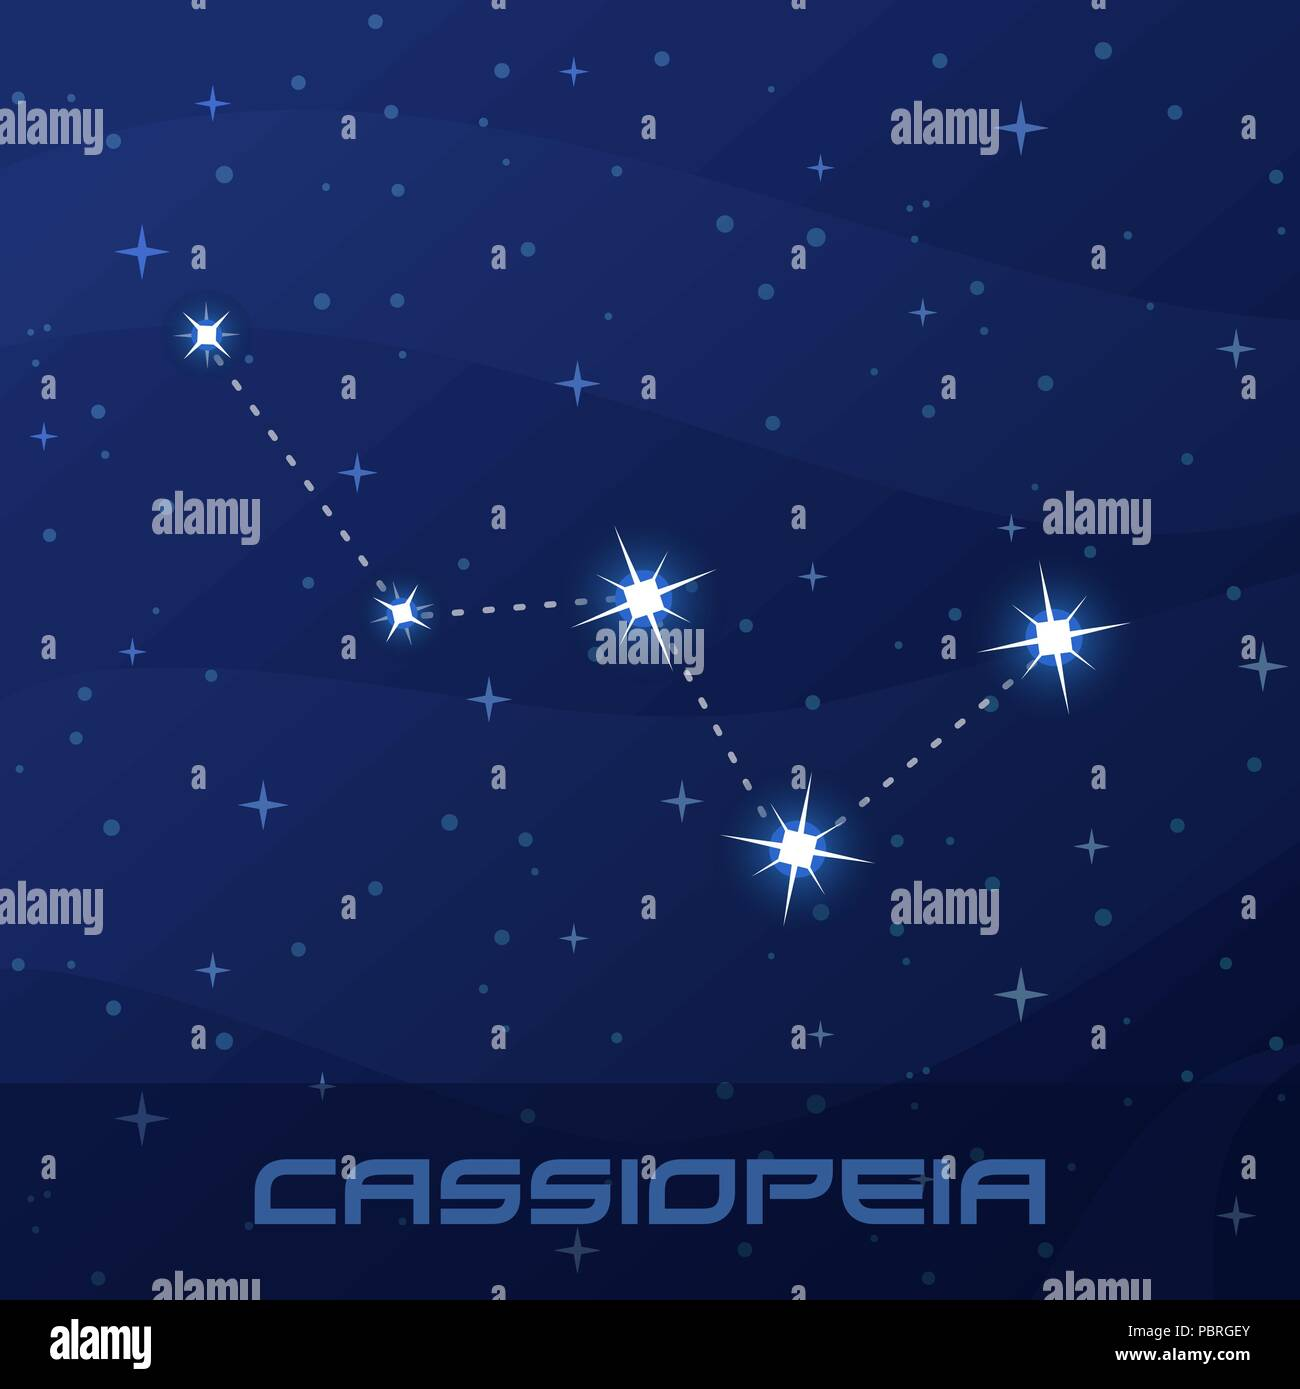 Constellation Cassiopeia, Queen, night star sky - Stock Image